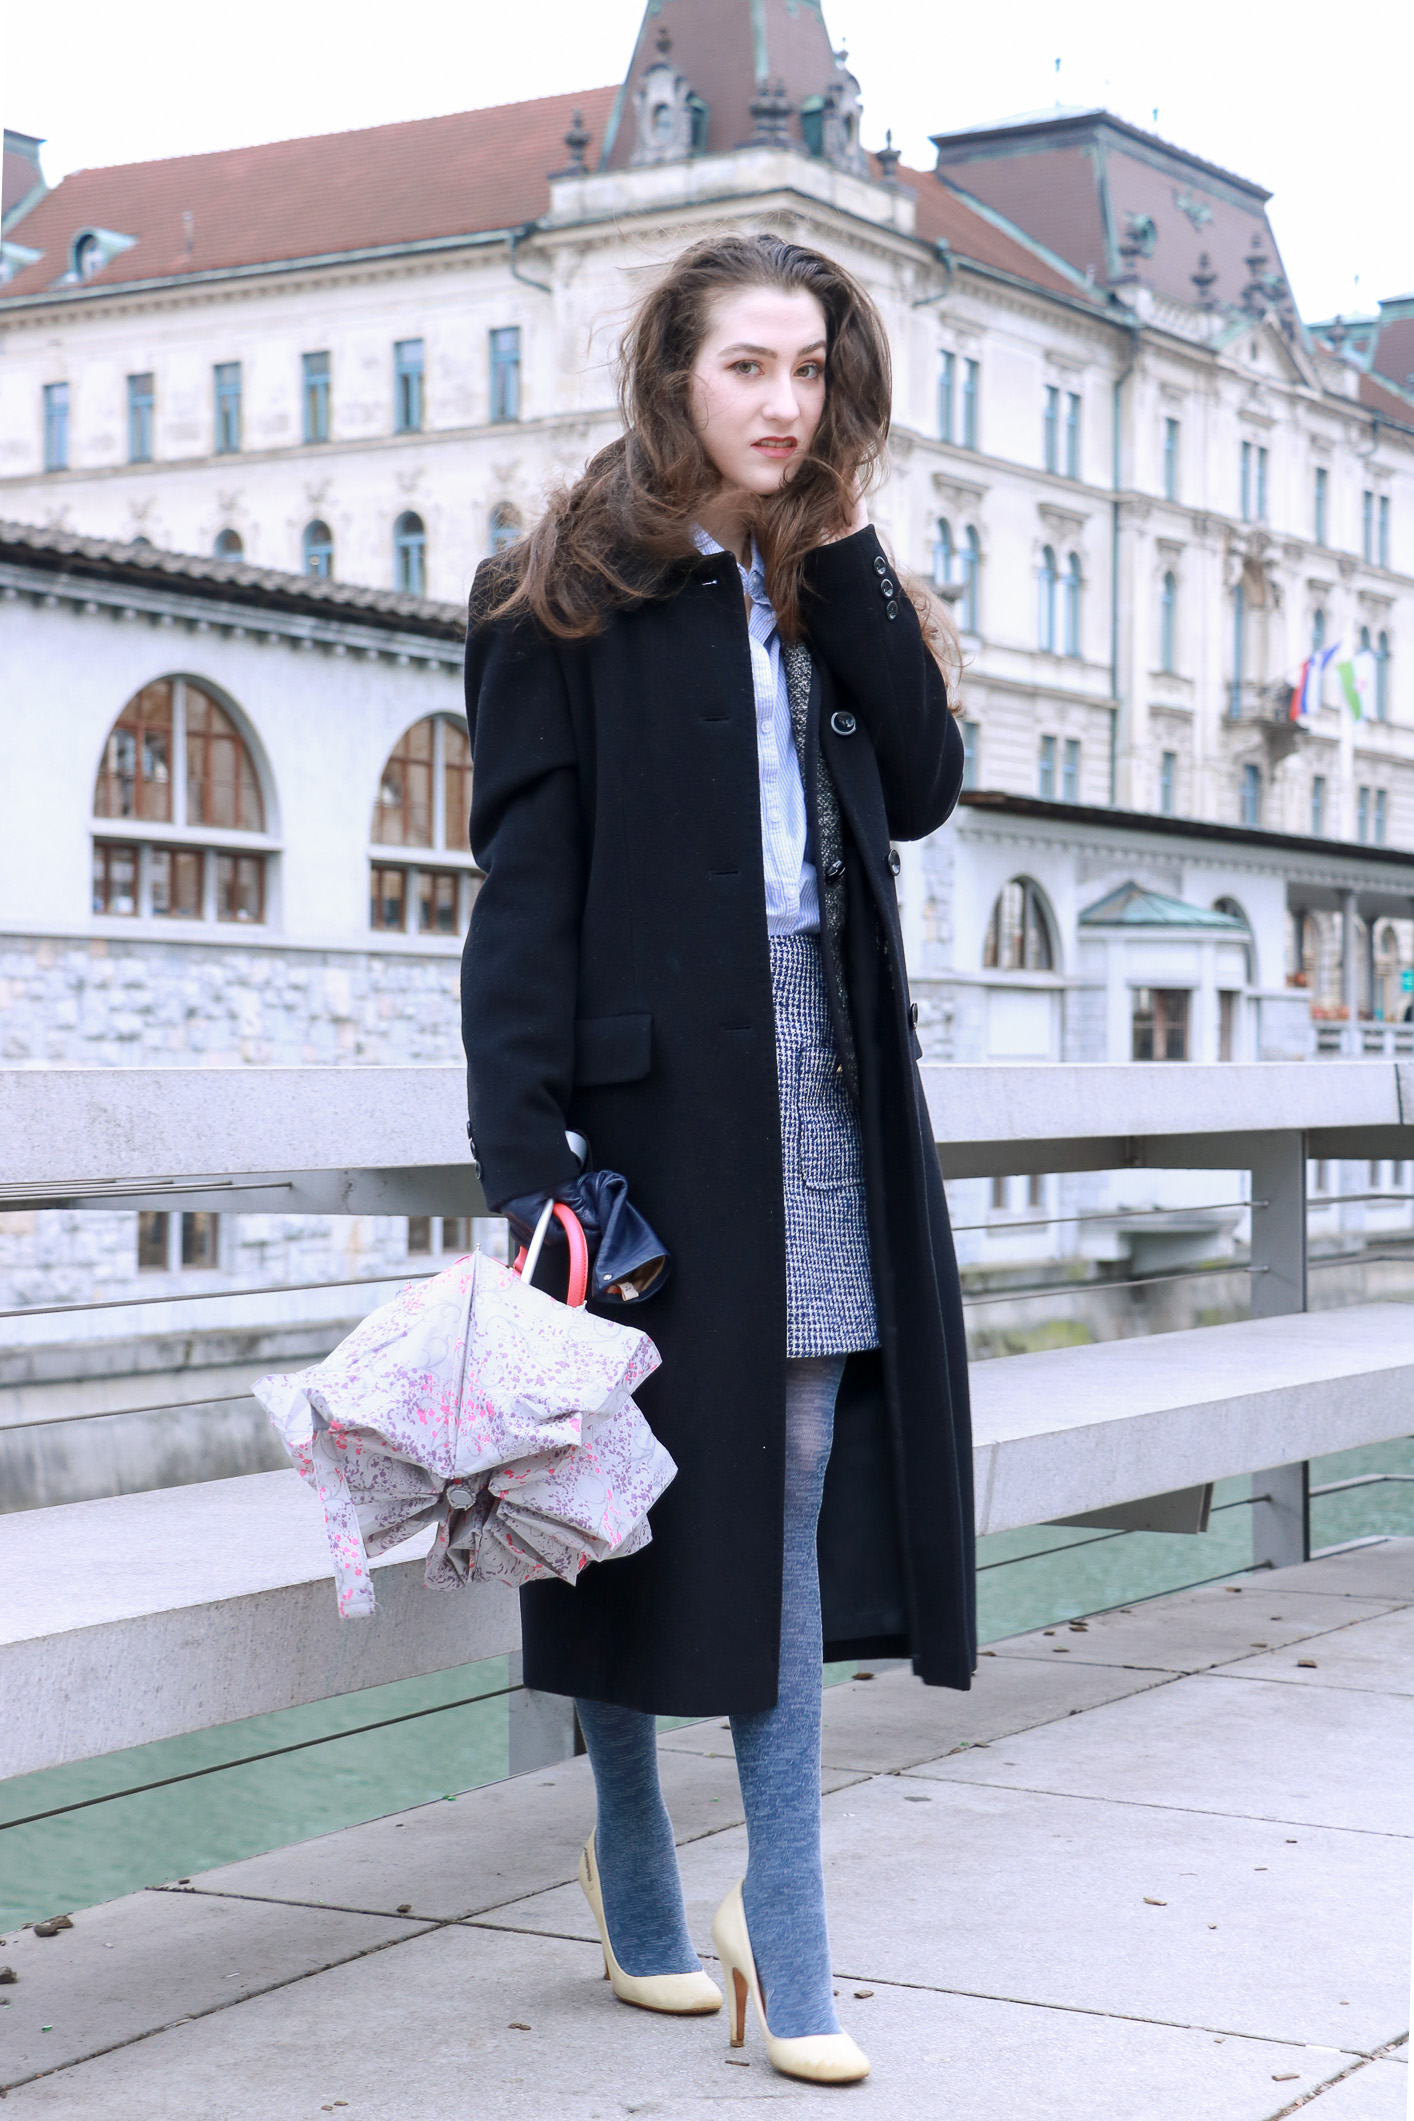 Fashion blogger Veronika Lipar of Brunette From Wall Street sharing how to wear the tweedy suit as a fashionista